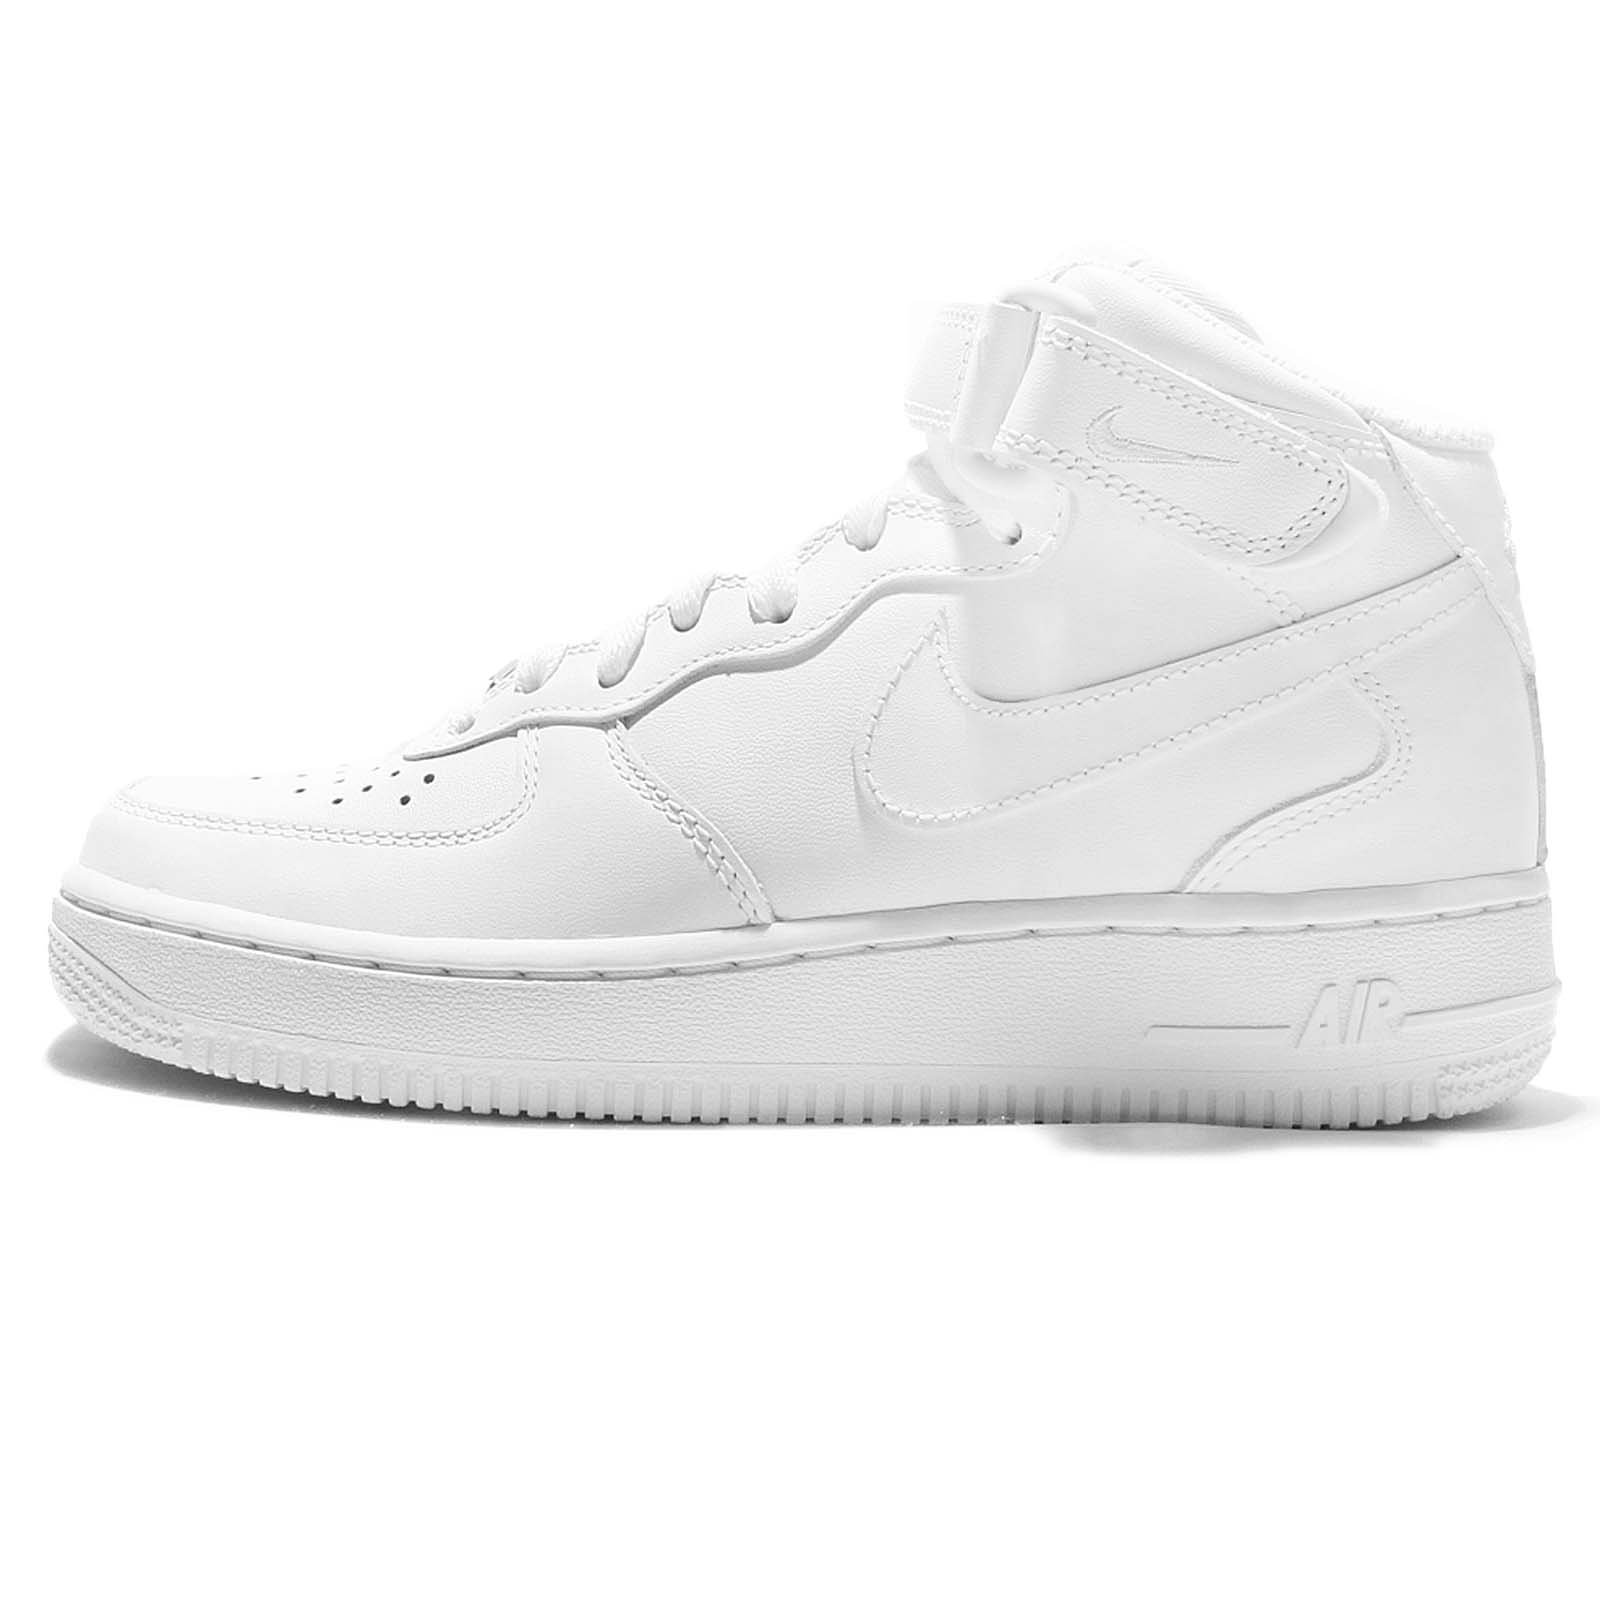 NIKE AIR Force 1 MID 07 LE WMNS Women Trainers White 366731 100, Size:38.5